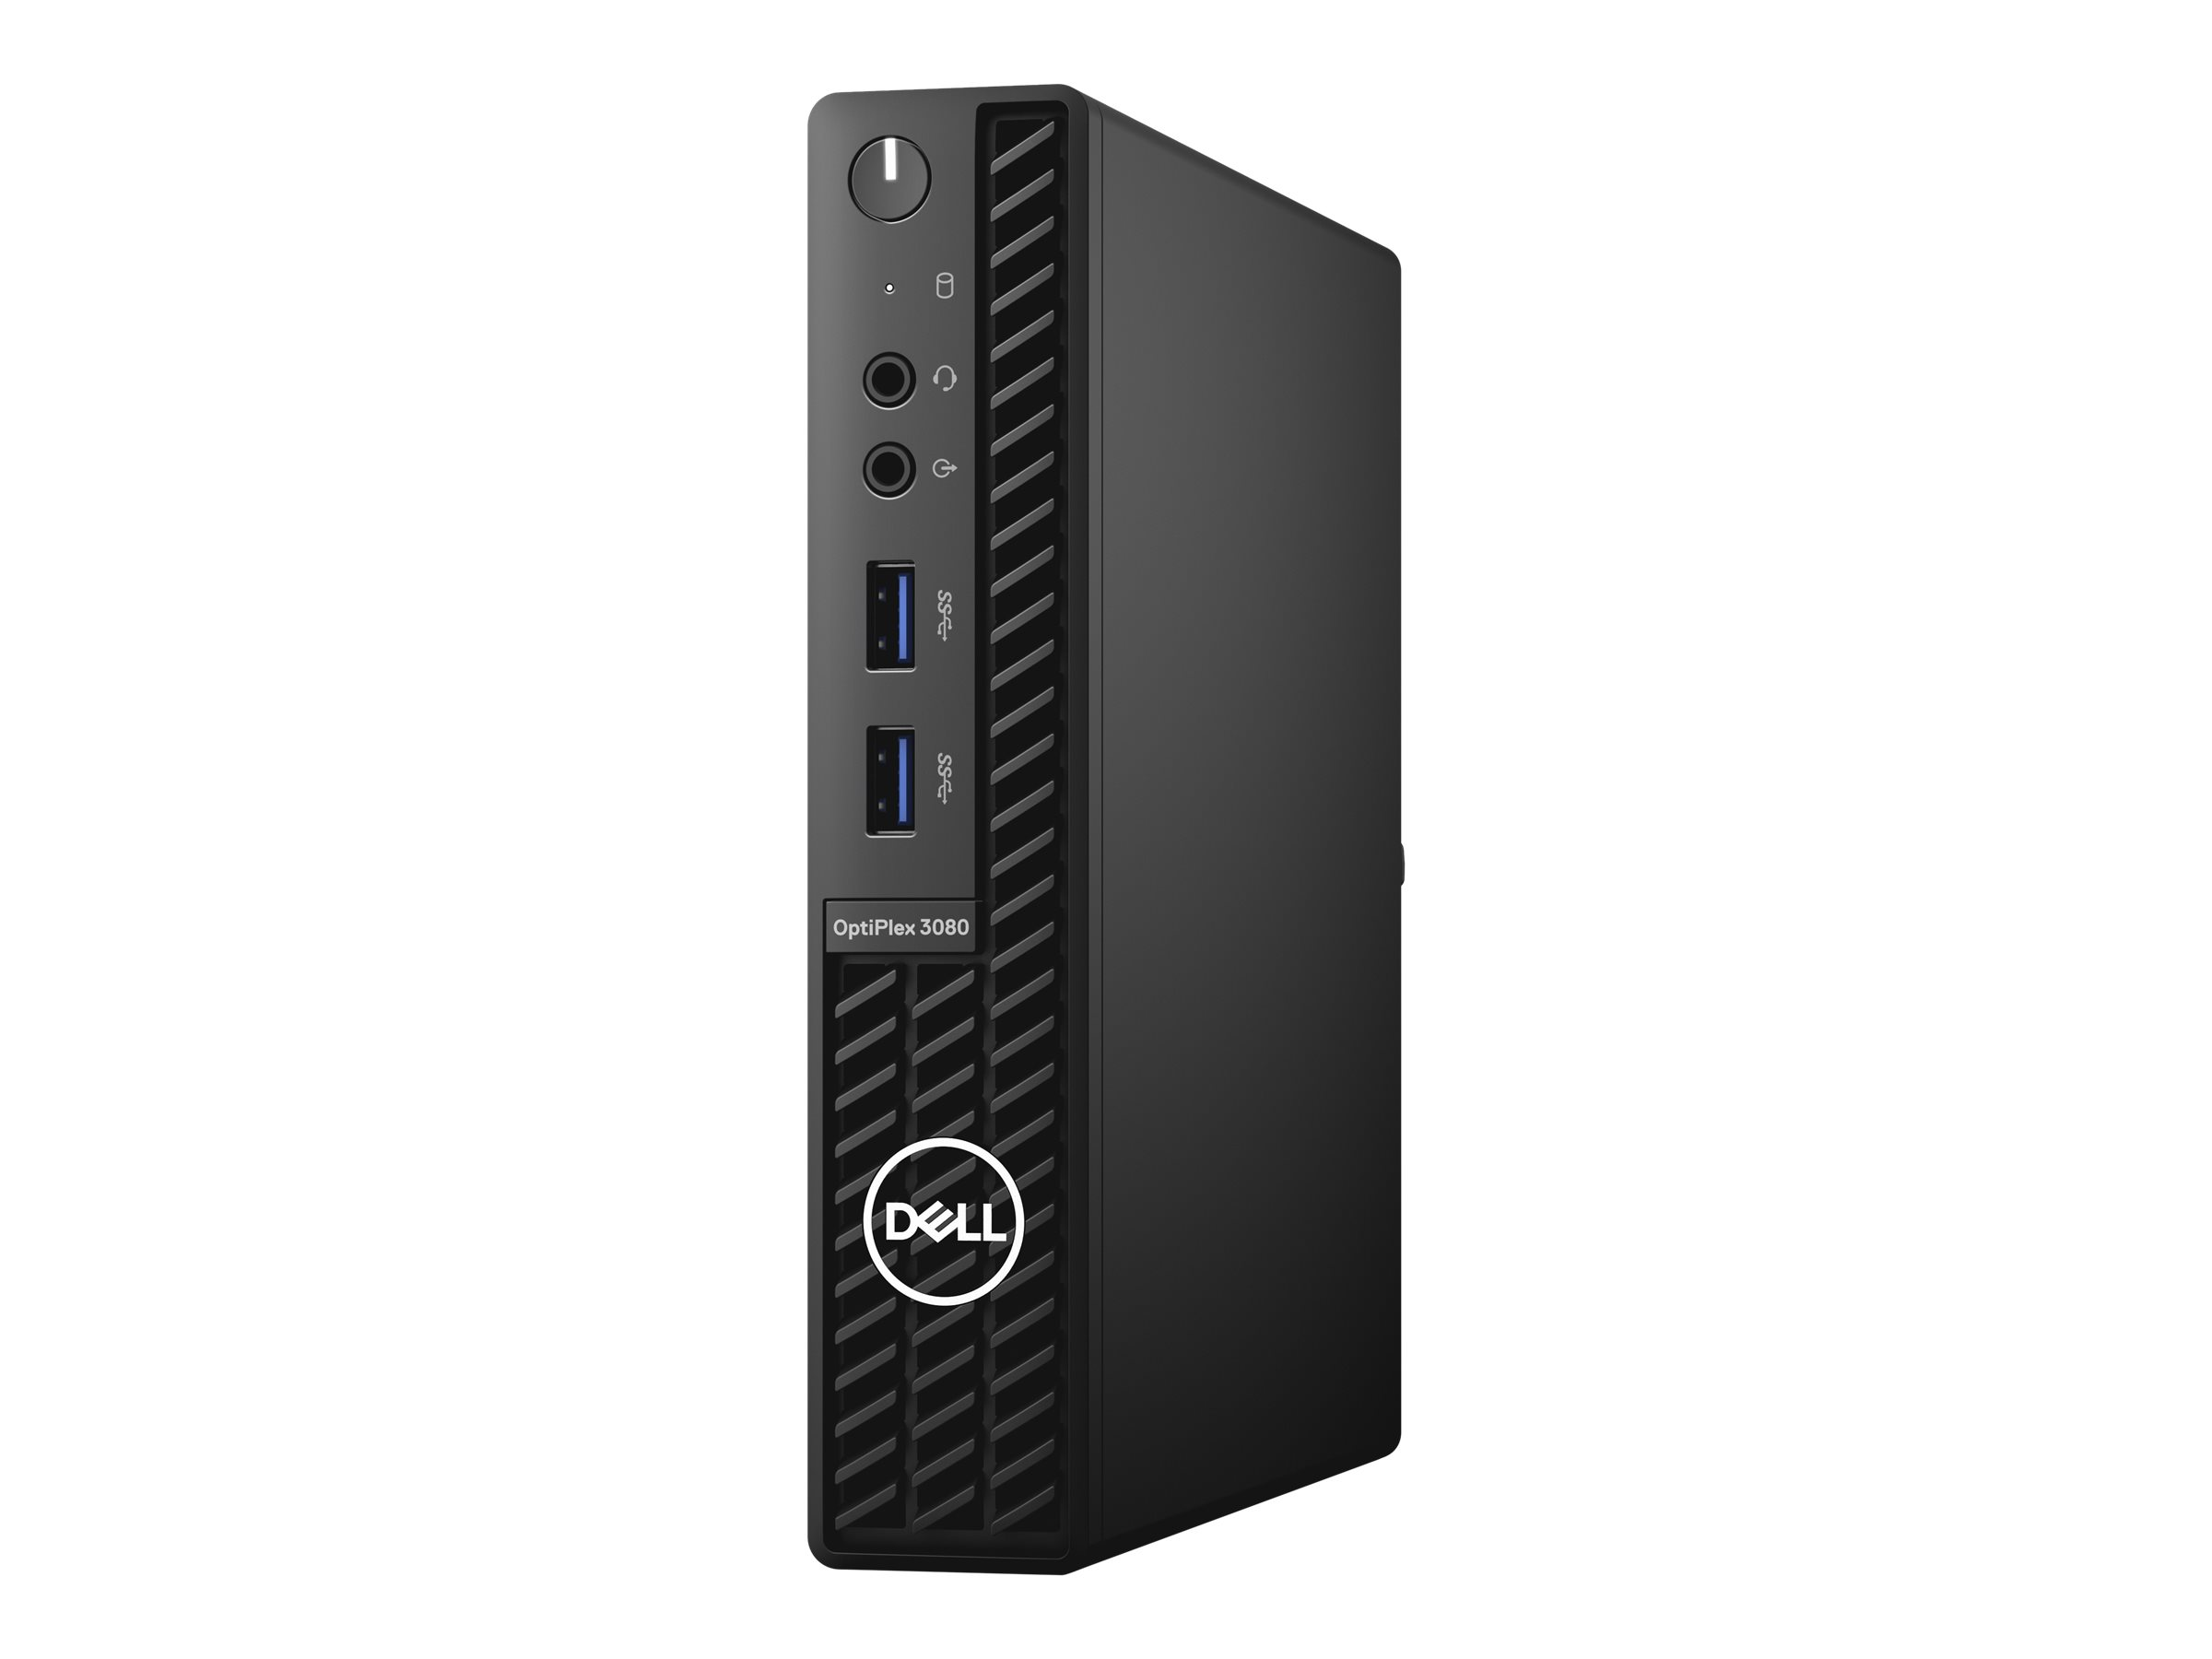 Dell OptiPlex 3080 - Micro - Core i5 10500T / 2.3 GHz - RAM 8 GB - SSD 256 GB - UHD Graphics 630 - GigE - WLAN: Bluetooth, 802.11a/b/g/n/ac - Win 10 Pro 64-Bit - Monitor: keiner - BTS - mit 1 Year Basic Onsite (CH, AT, DE - 3 Years)